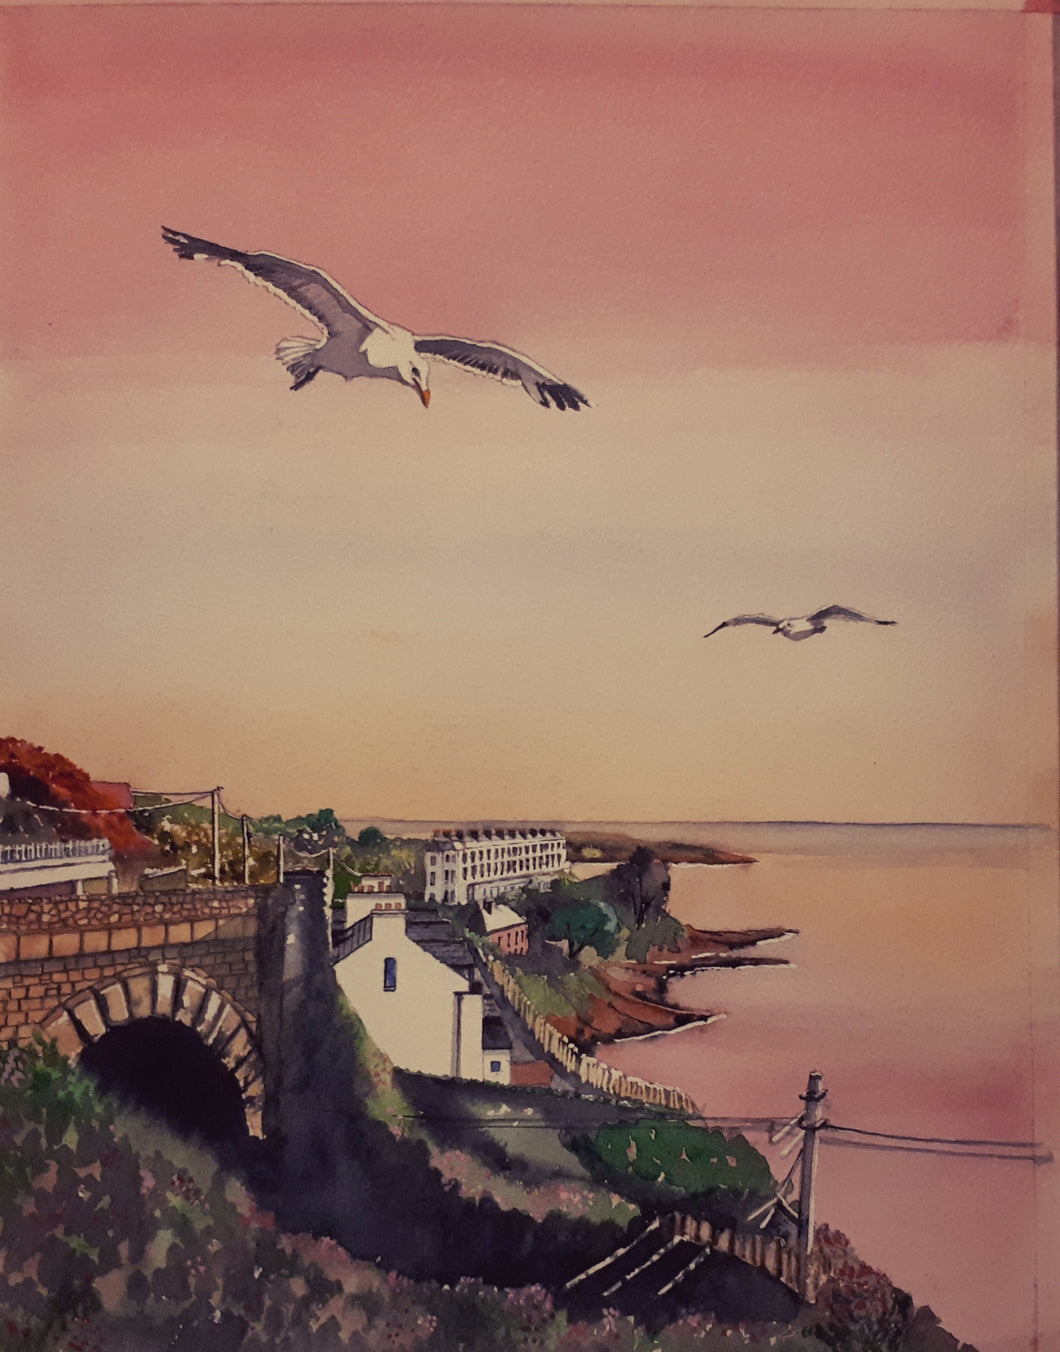 Original Watercolour Painting of Sorrento Terrace, Dalkey, Dublin, Ireland, by Irish Artist Cathal O'Briain. Free P&P with Padded Protection within Ireland.